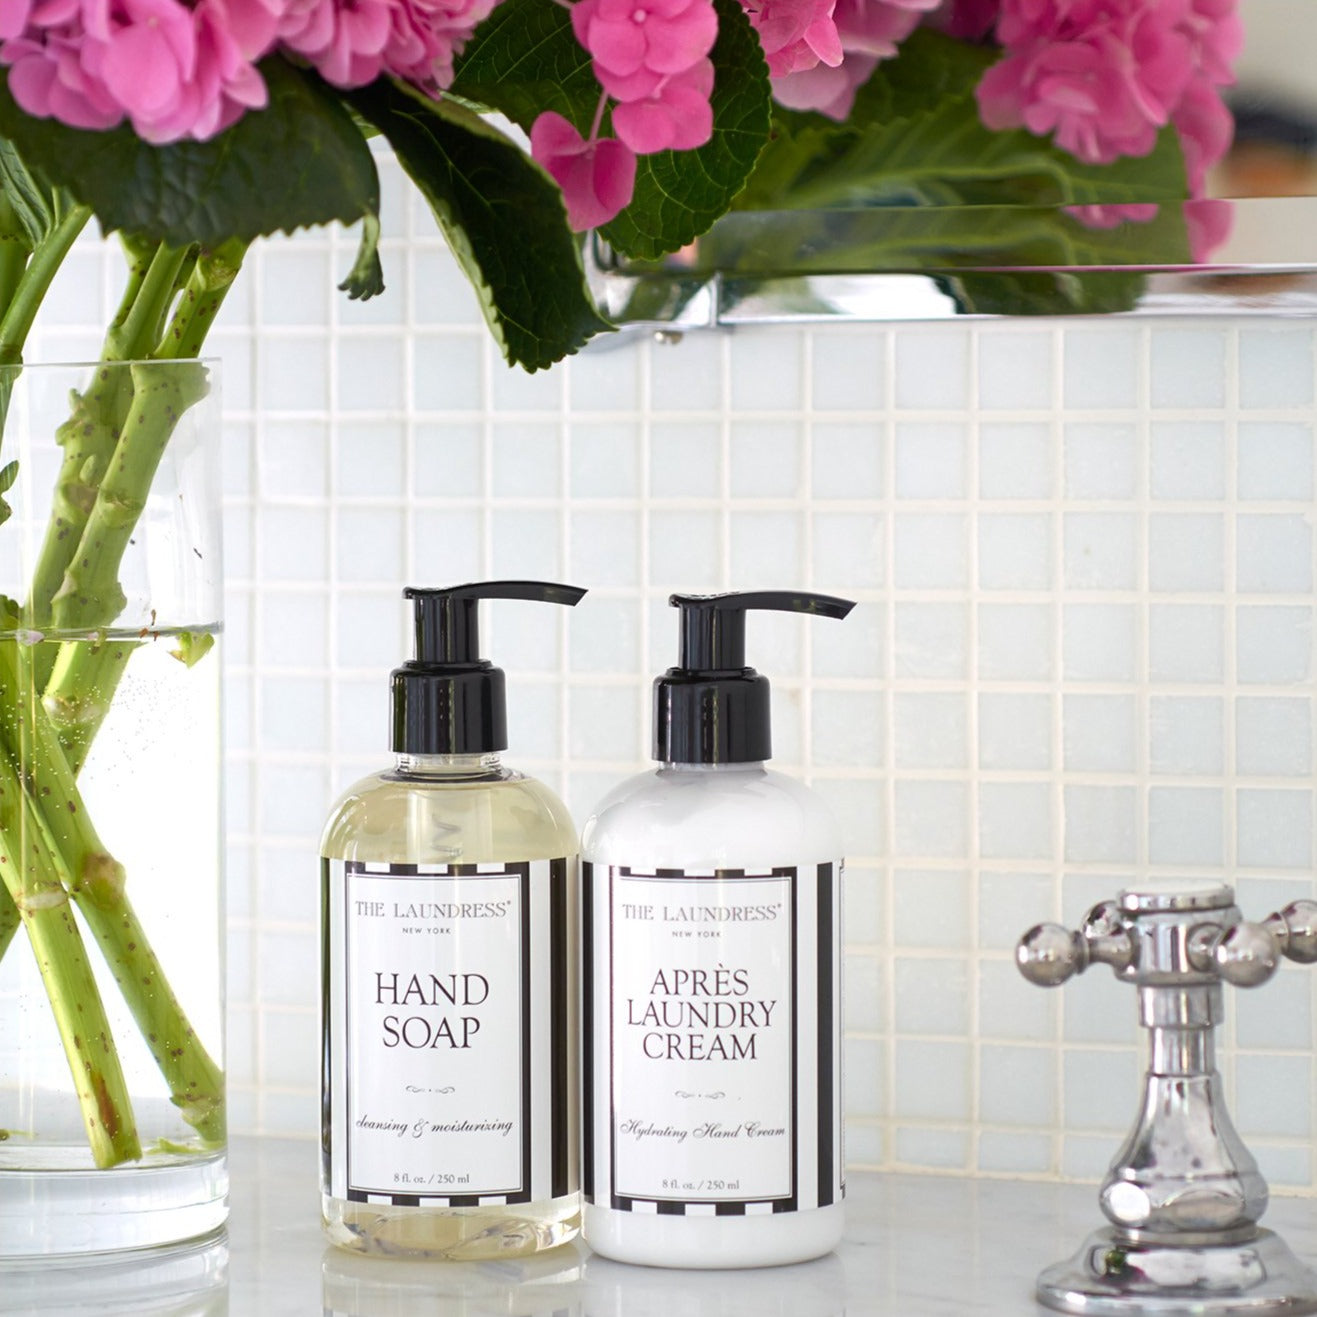 The Laundress Liquid Hand Soap - Classic